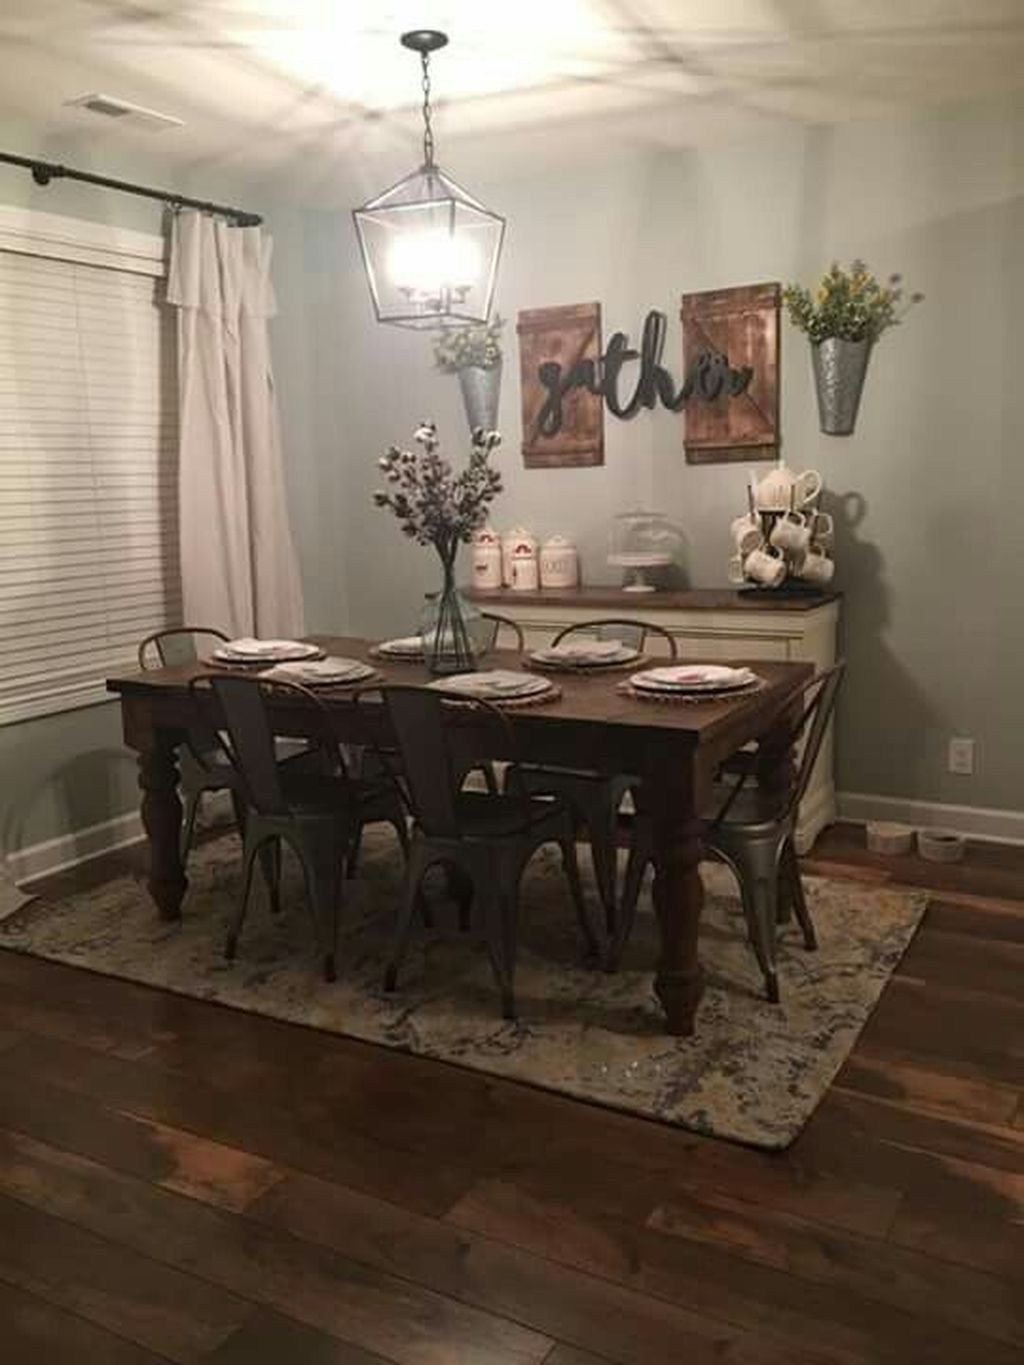 AWESOME STUNNING RUSTIC FARMHOUSE DINING ROOM SET ...